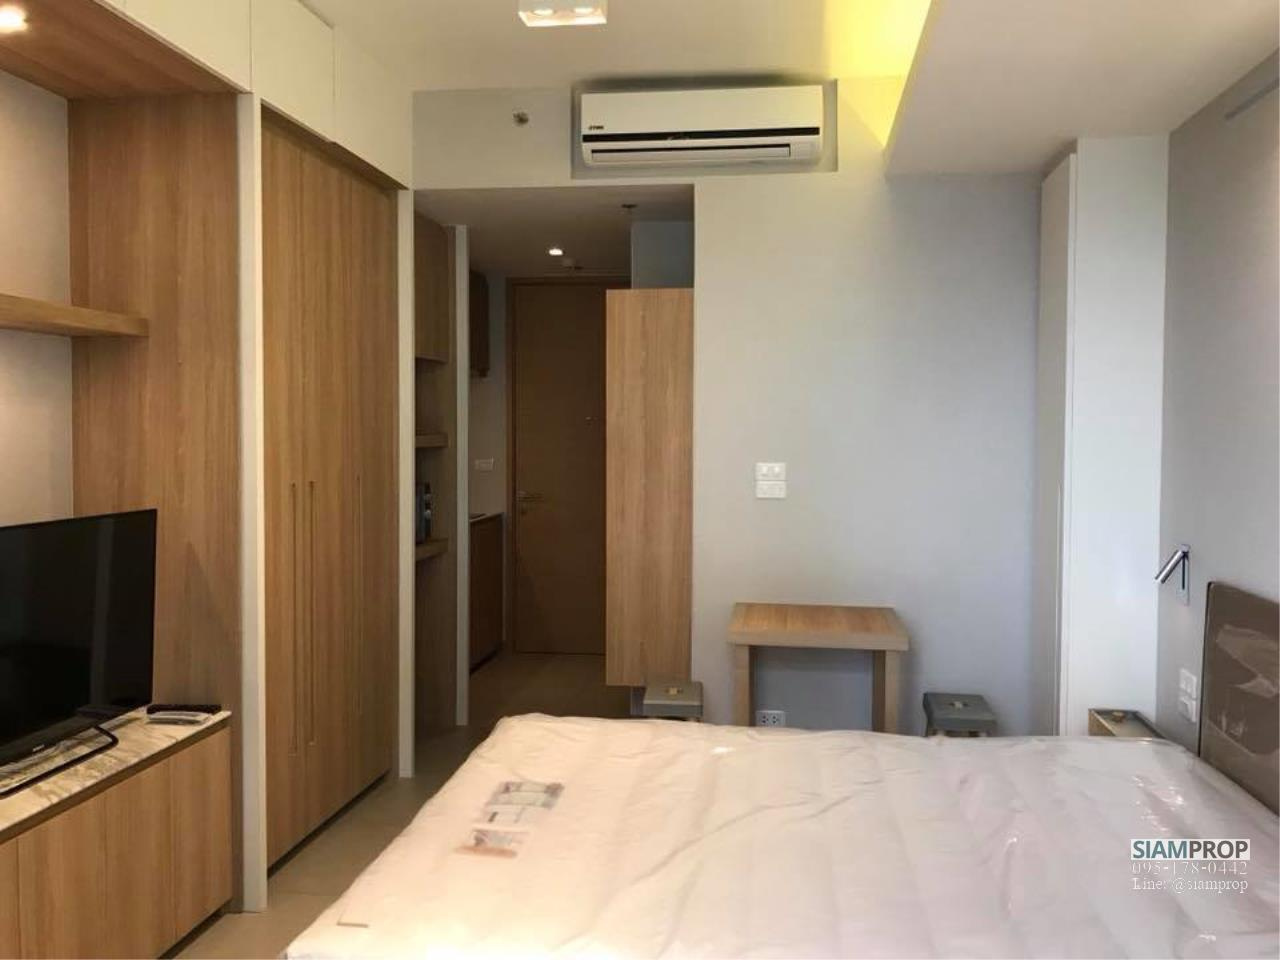 Siam Prop Agency's The Lofts Ekamai, Studio  for rent very close to BTS 6